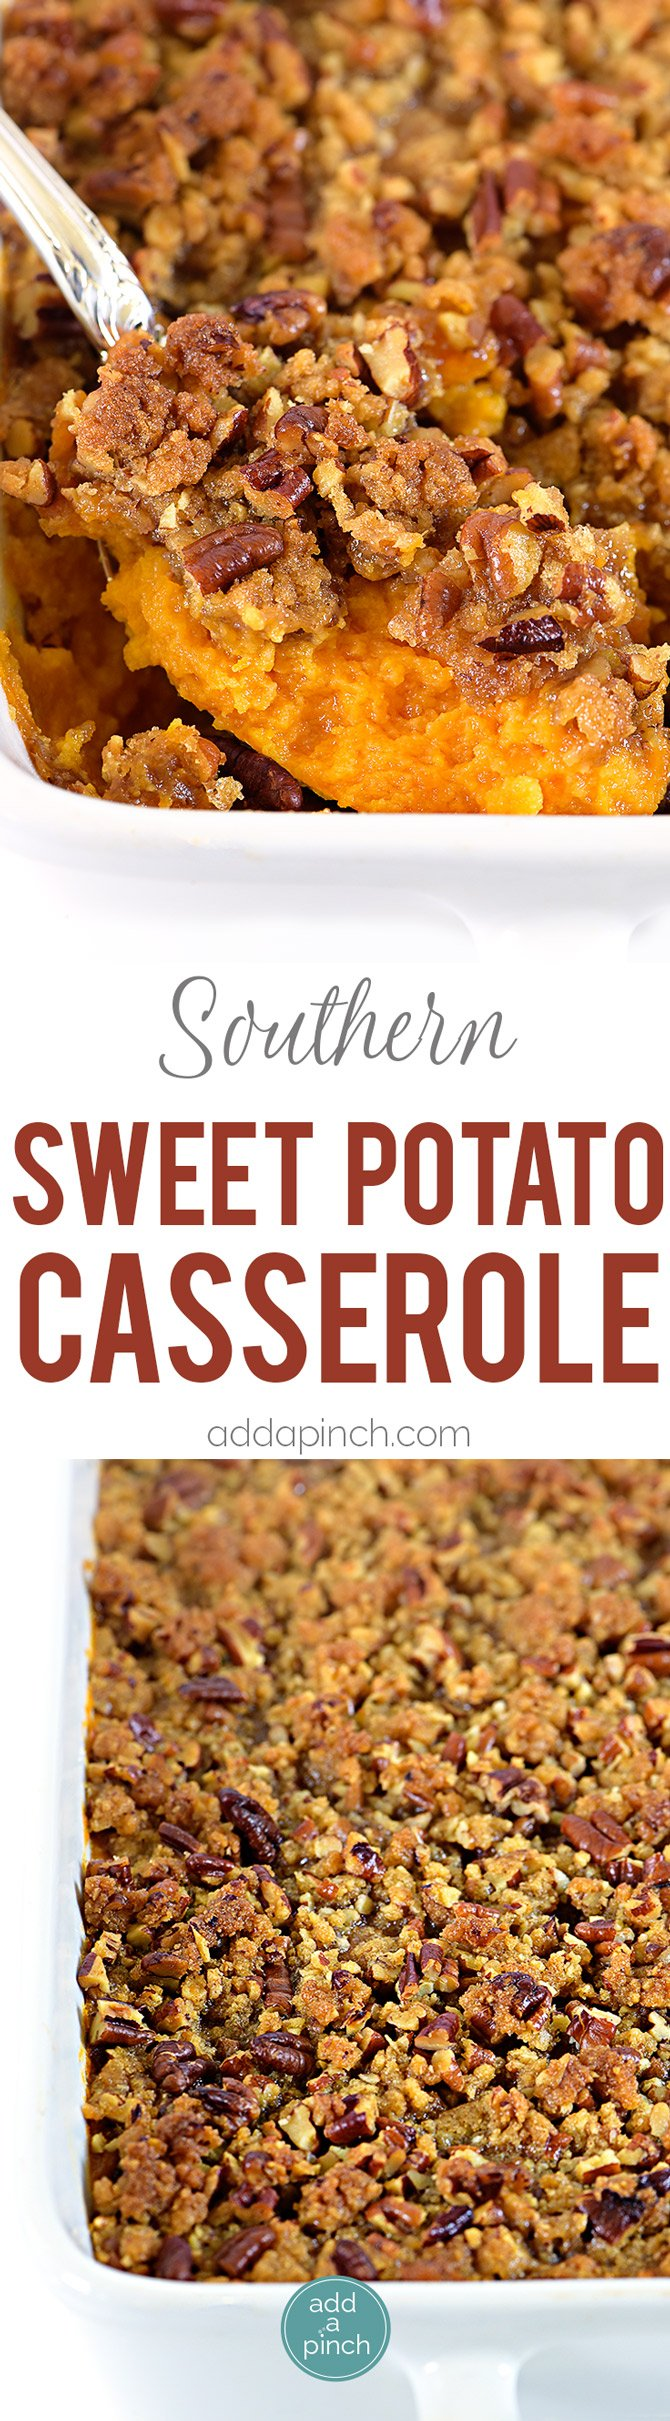 Southern Sweet Potato Casserole Cooking Add A Pinch